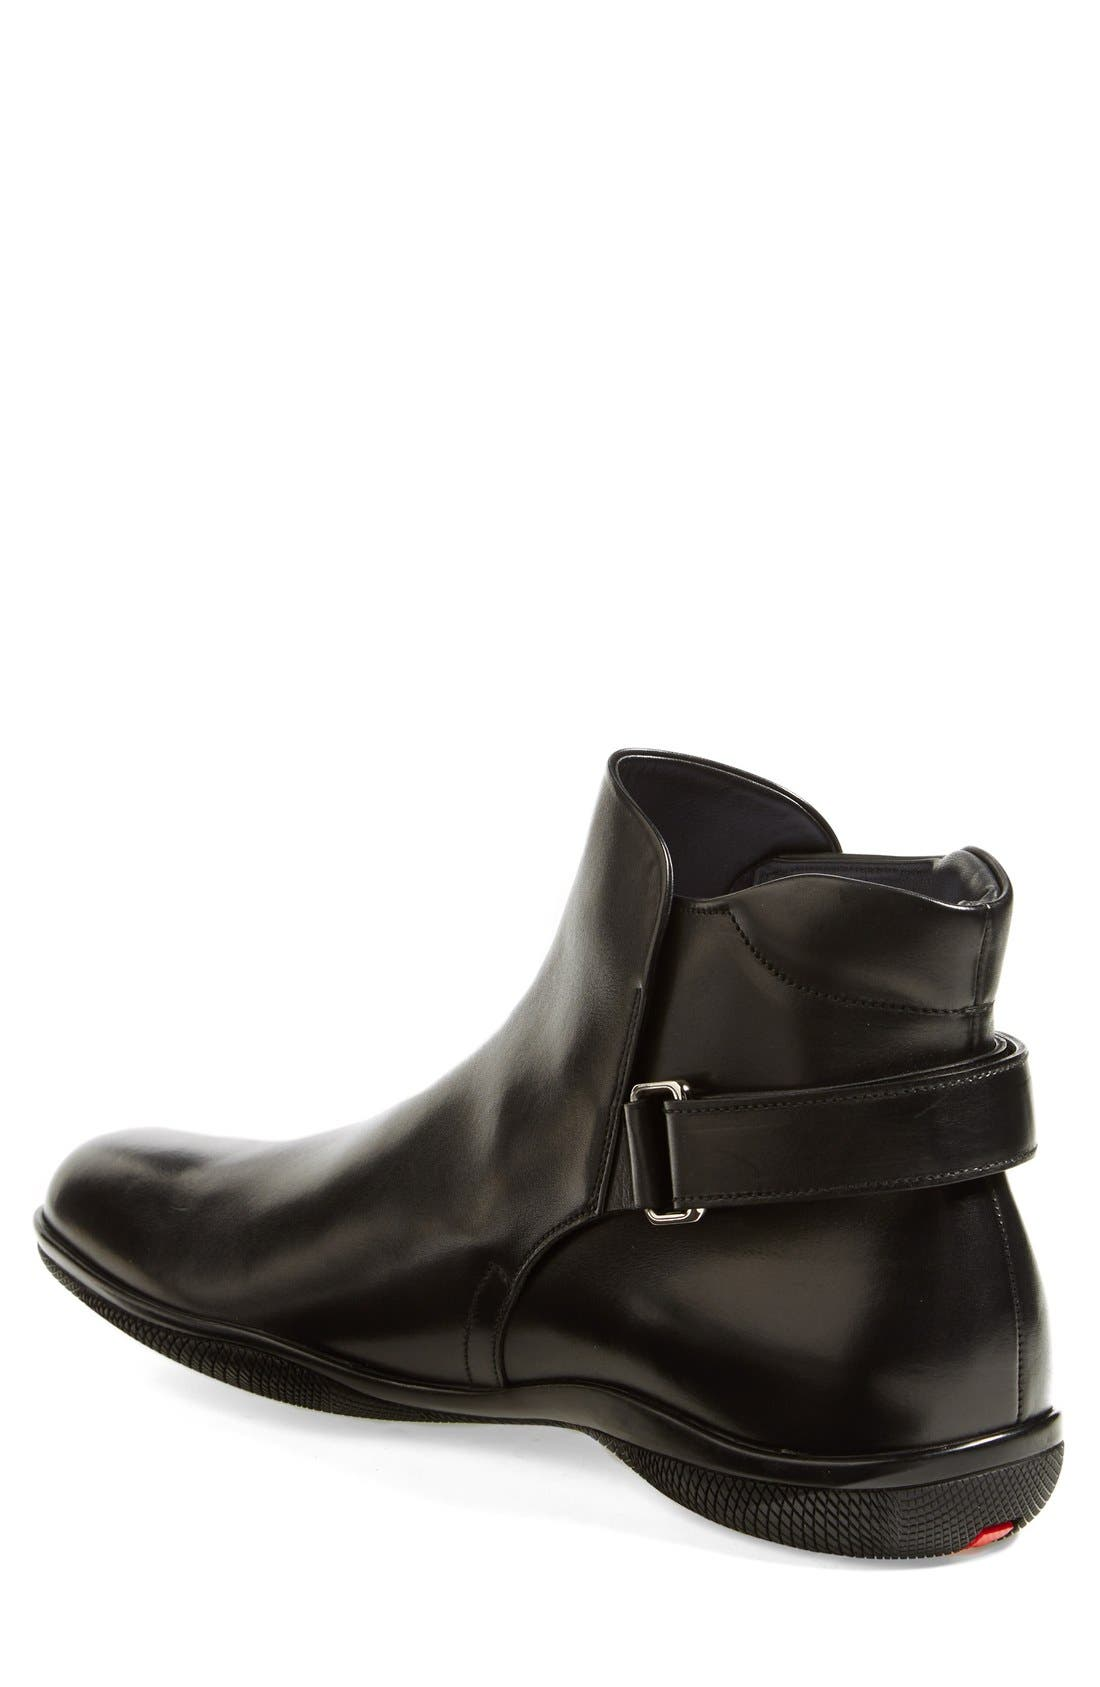 Alternate Image 2  - Prada 'Toblak' Plain Toe Boot (Men)